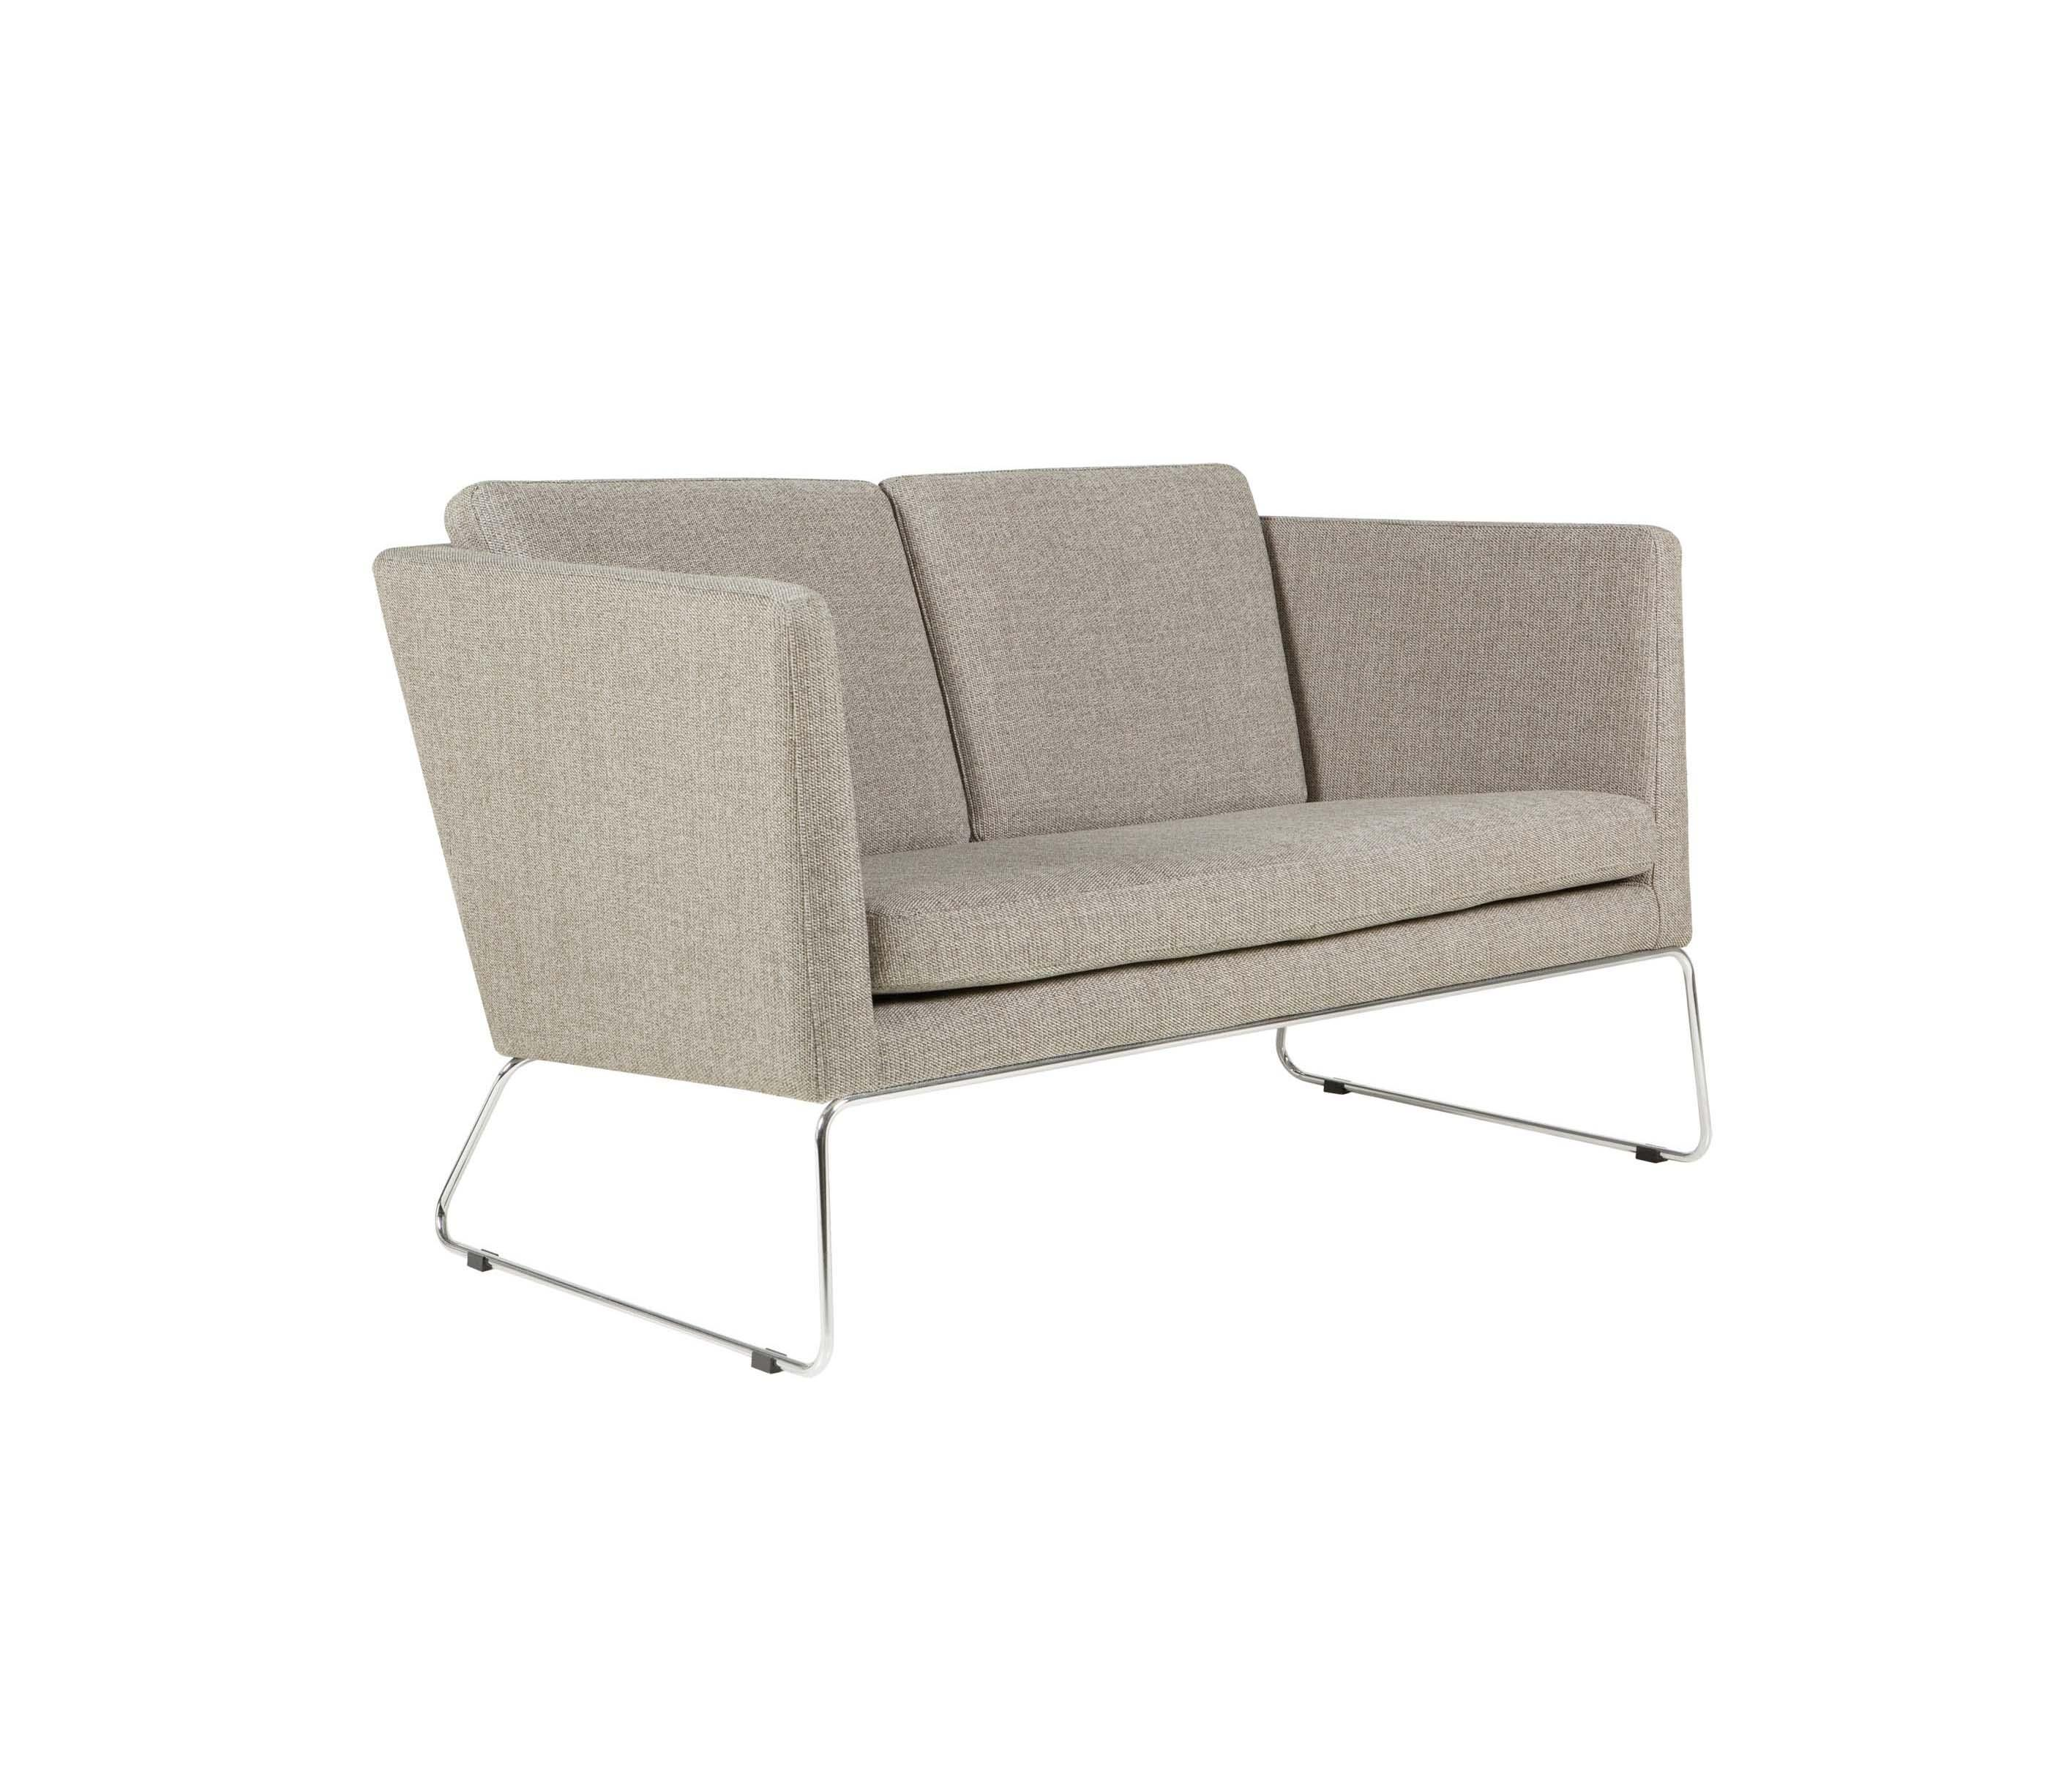 Clark By Sits Sofas